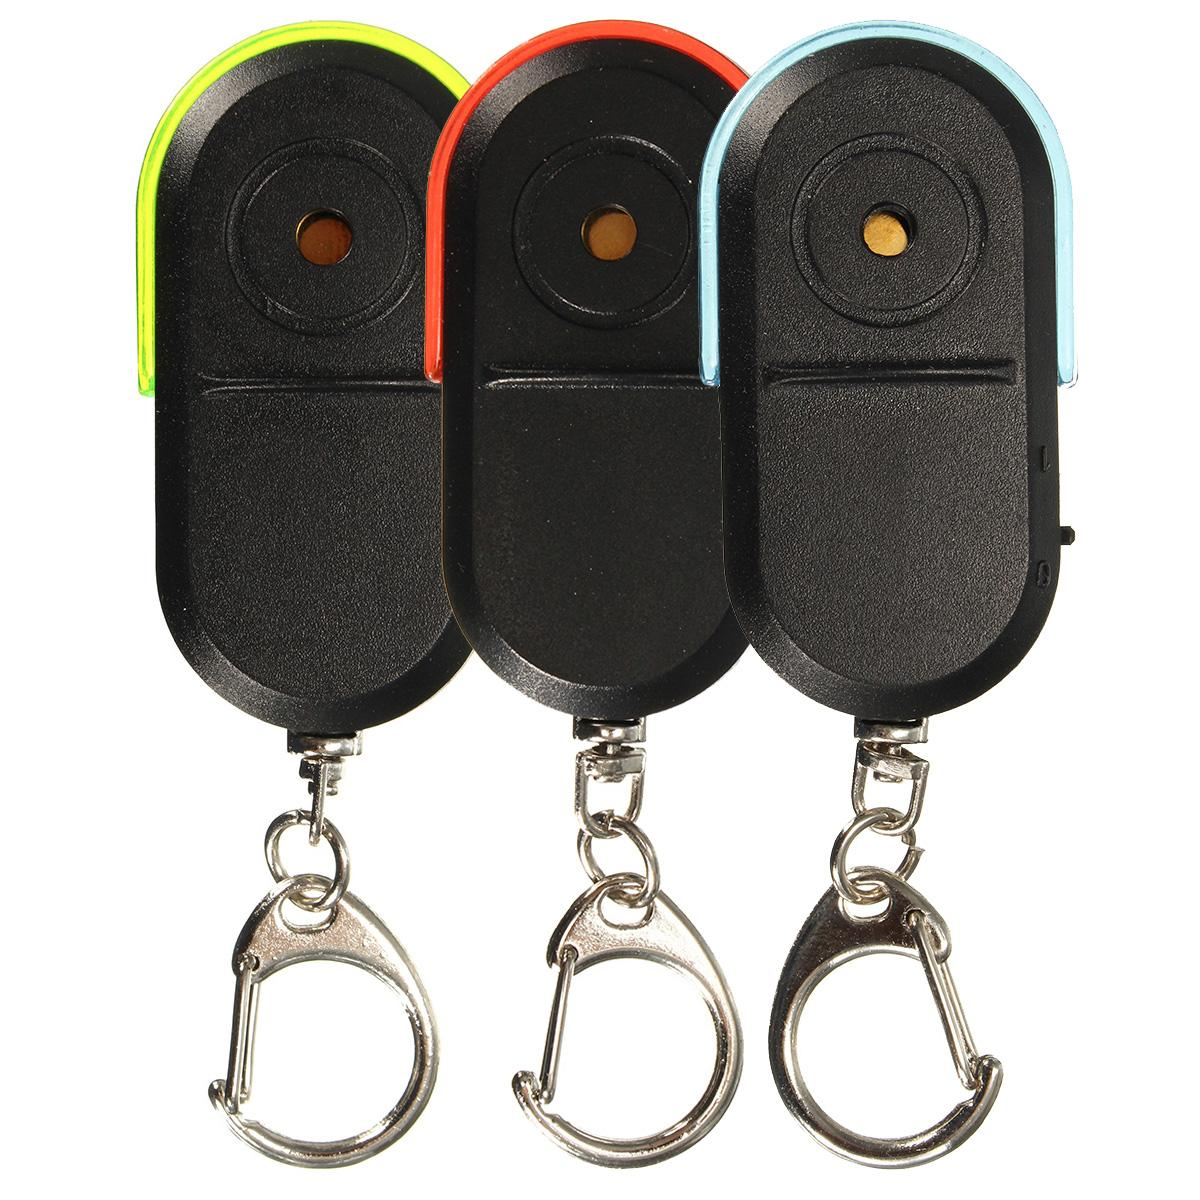 High Quality Portable Size Wireless Anti-Lost Alarm Key Finder Locator Keychain Whistle Sound LED Light Sound LED Light Locator